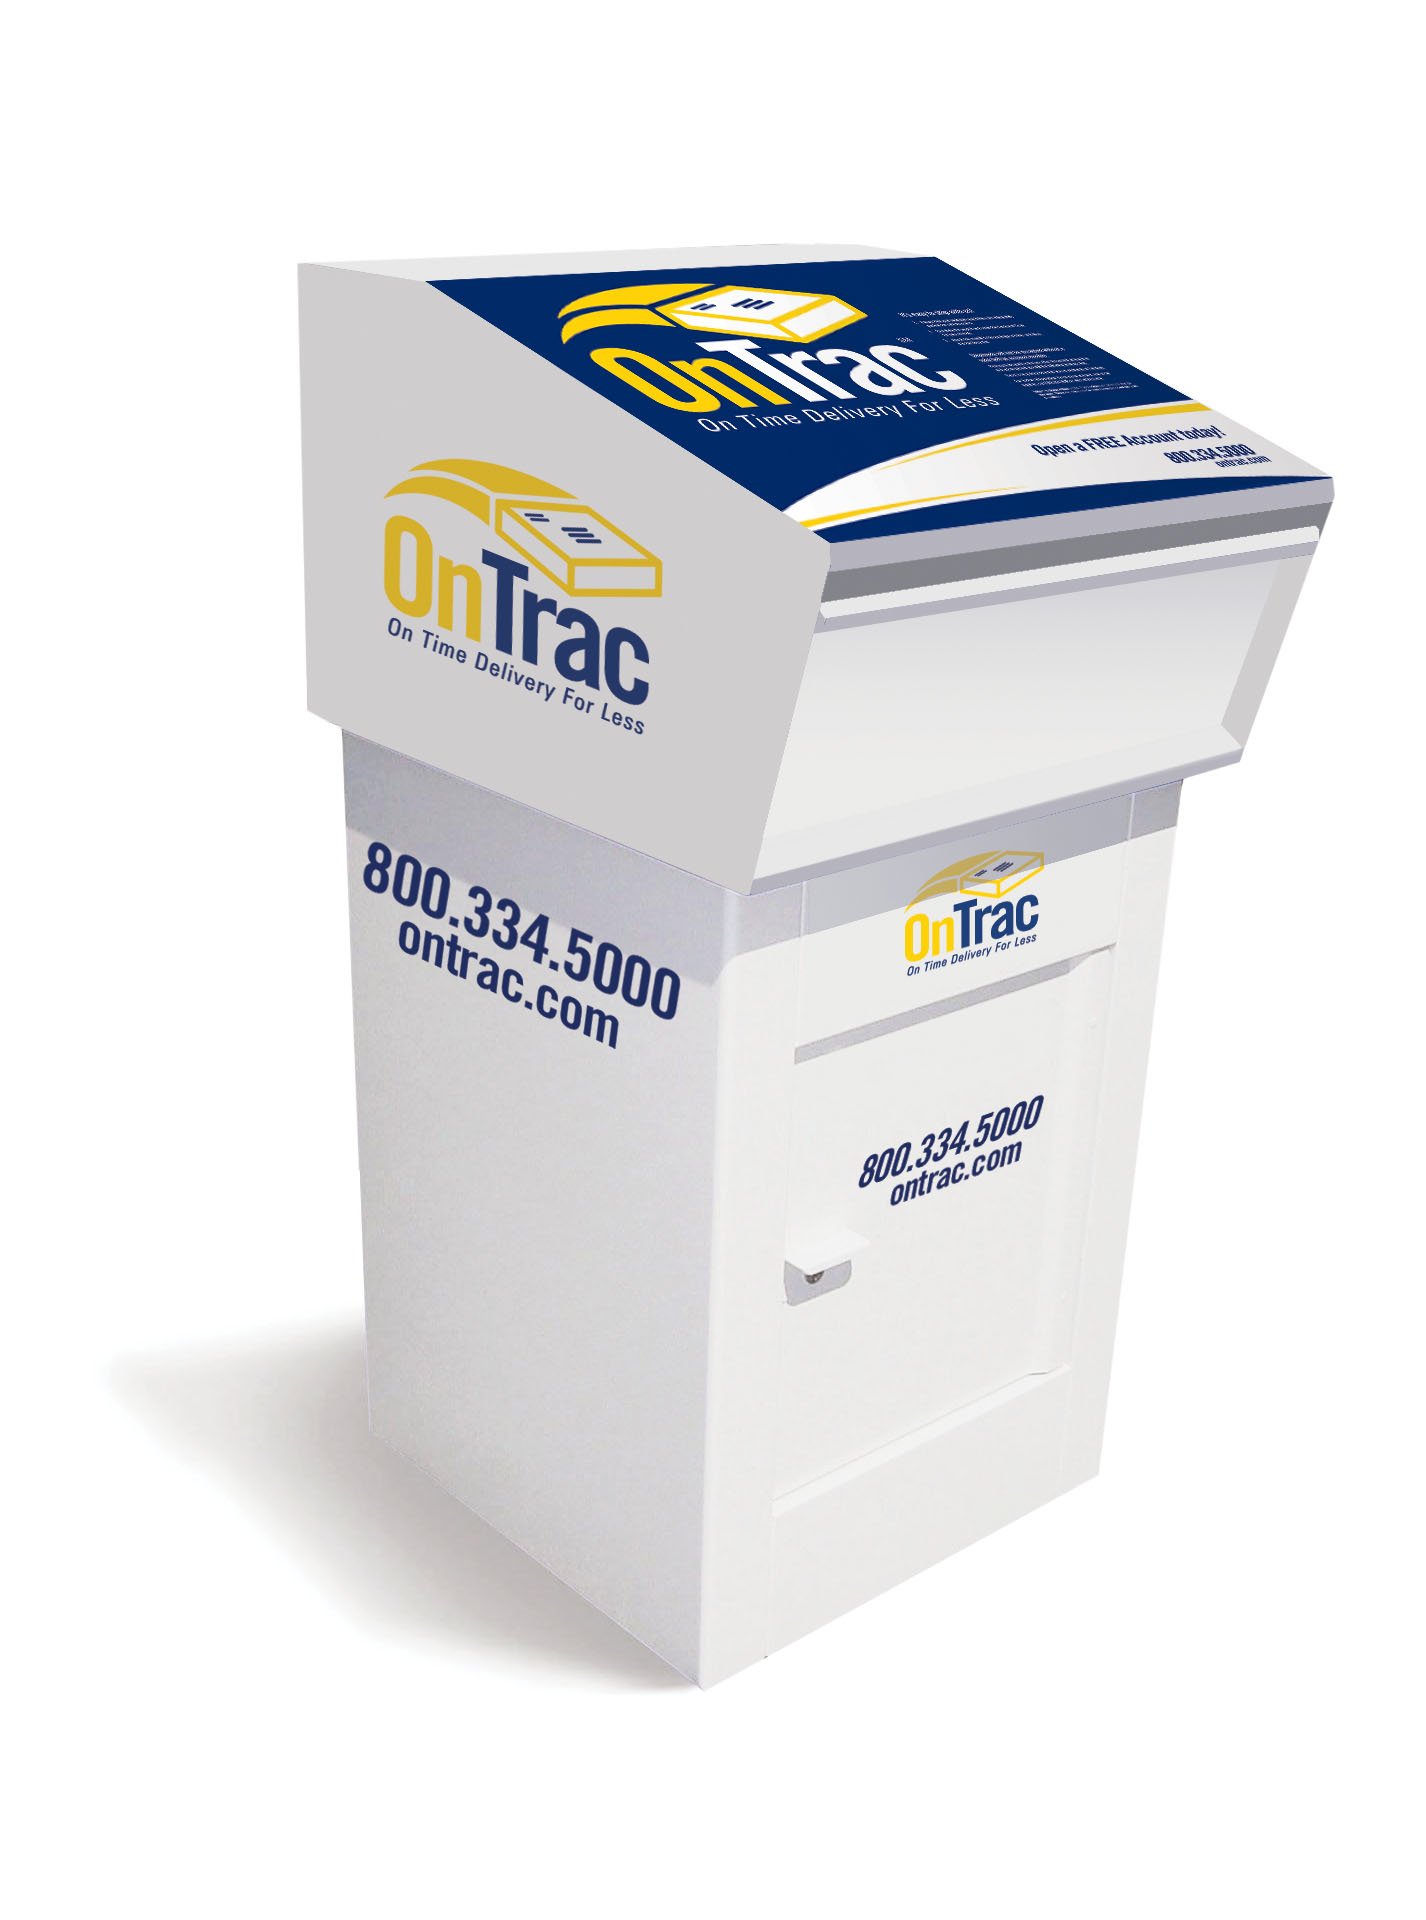 OnTrac Drop Box